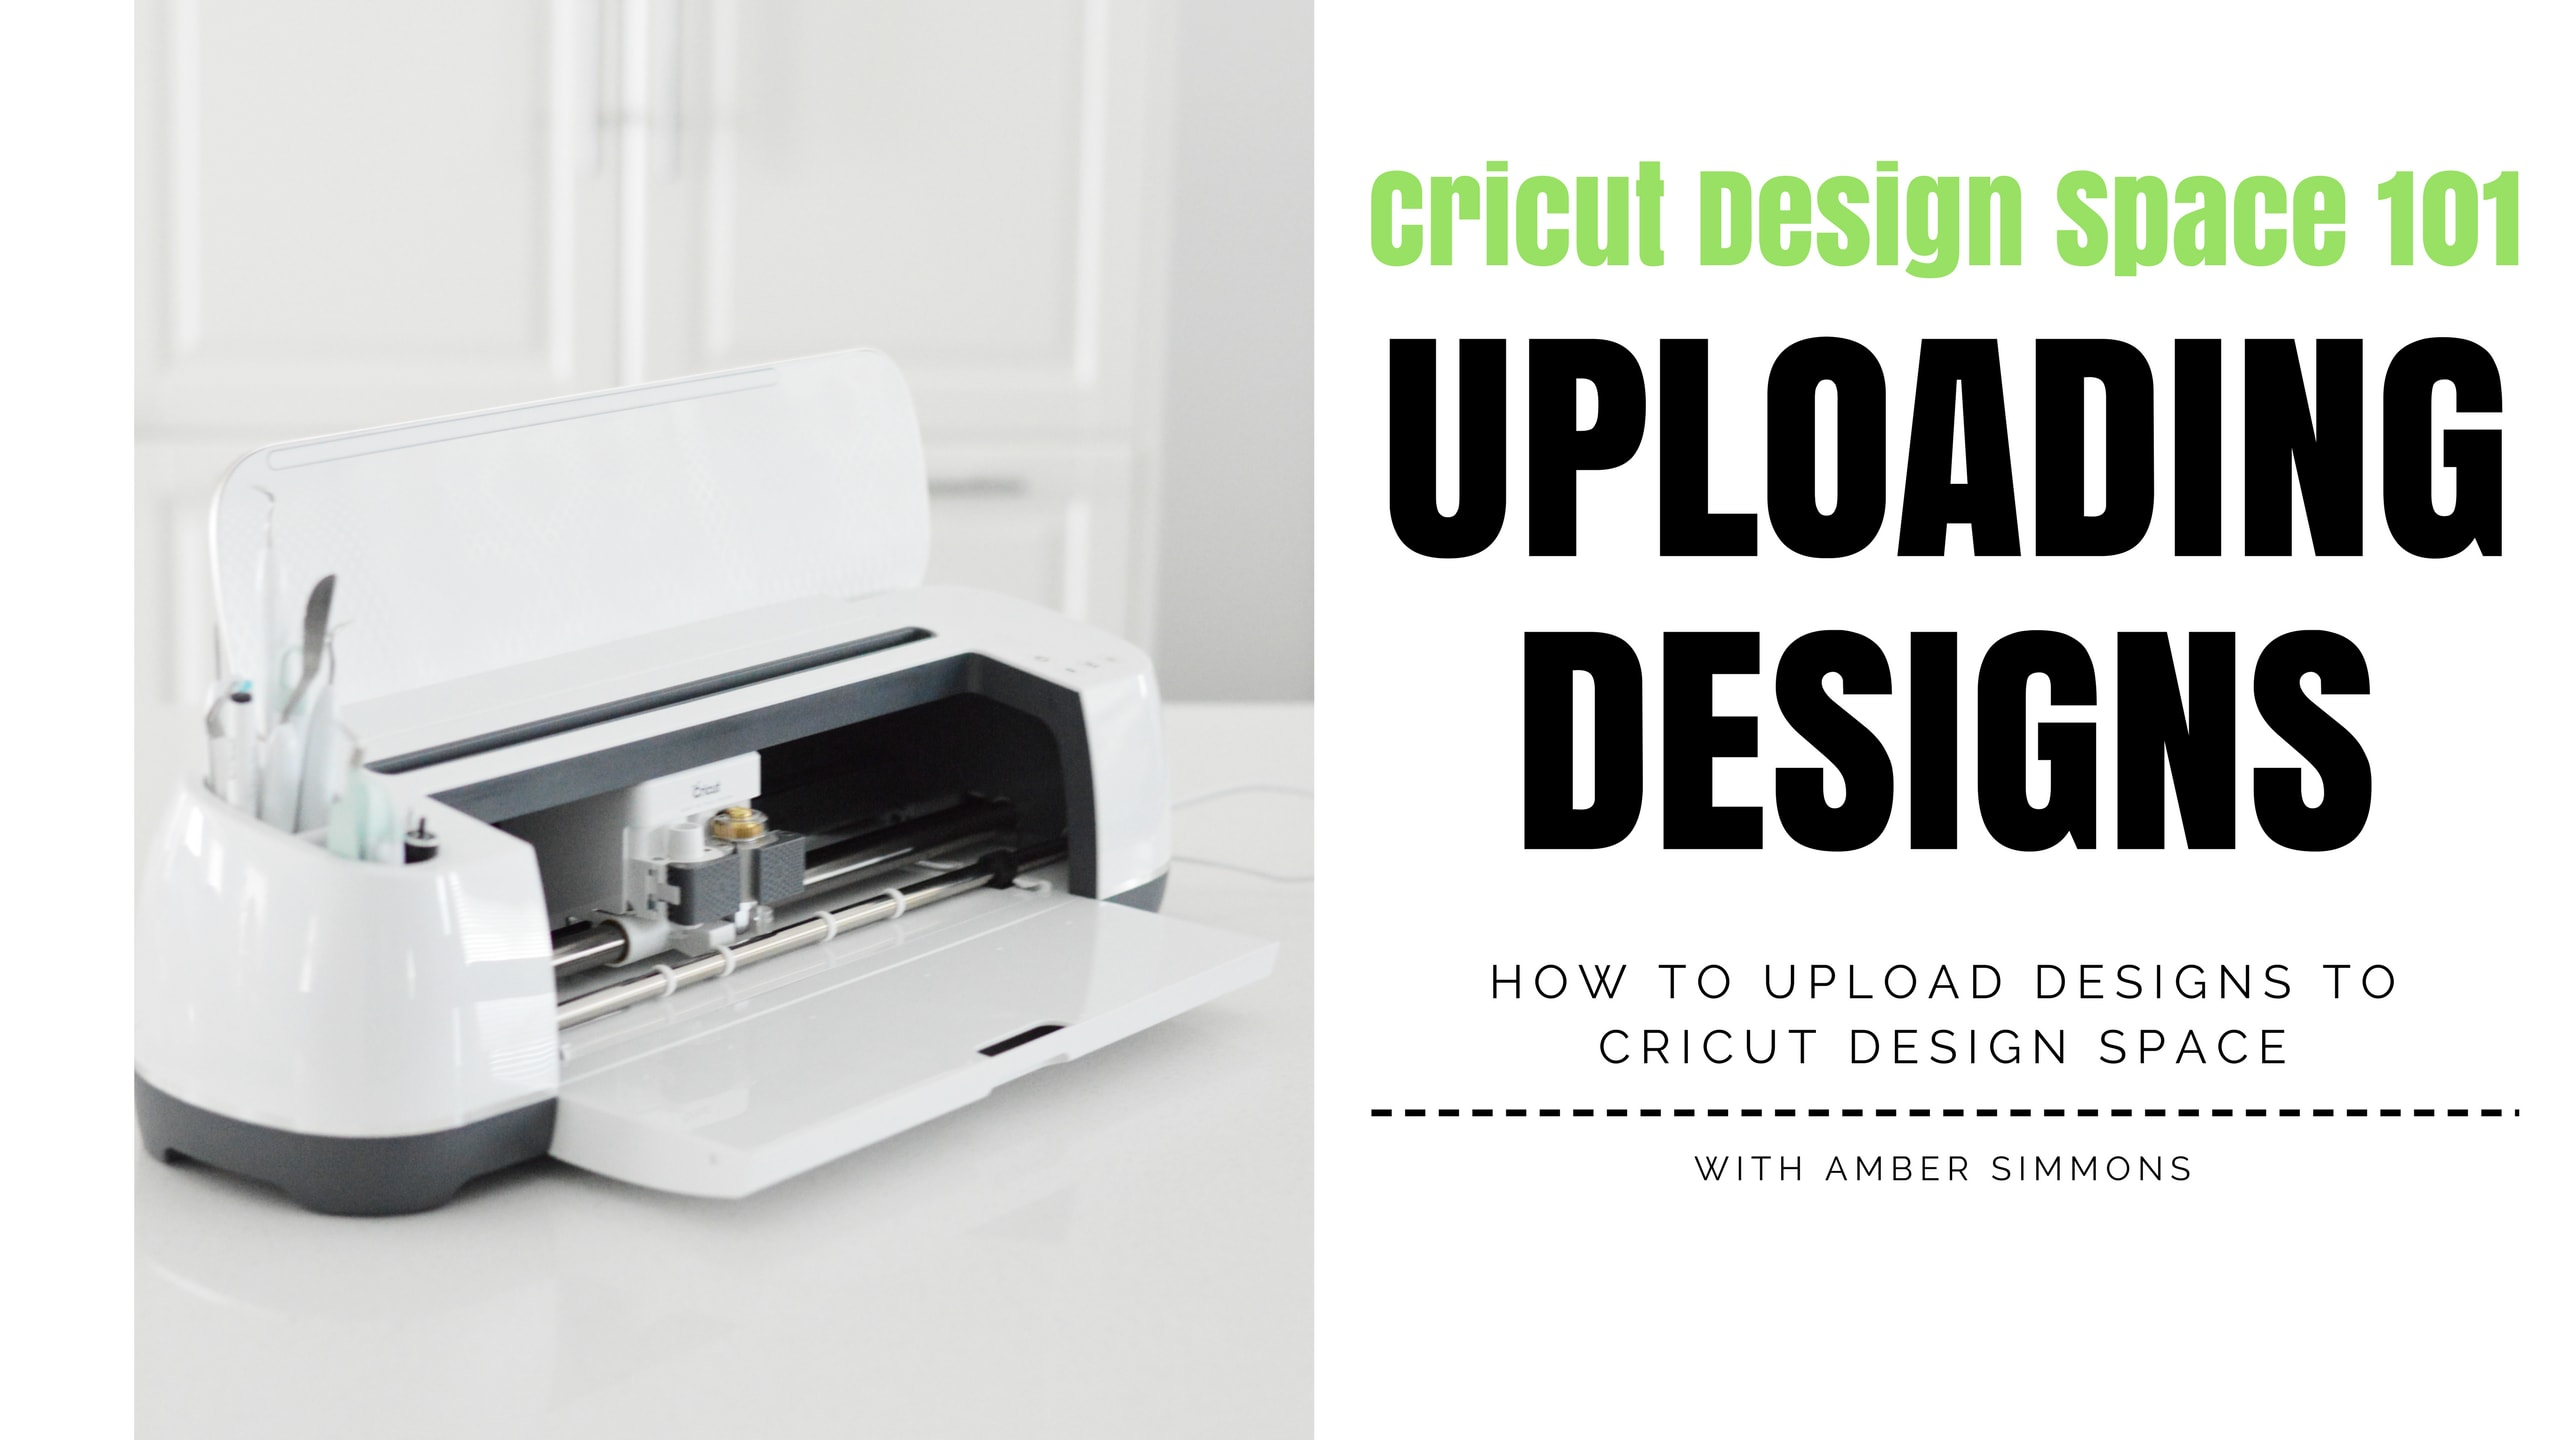 Cricut Design Space 101 - HOW TO UPLOAD YOUR OWN IMAGES